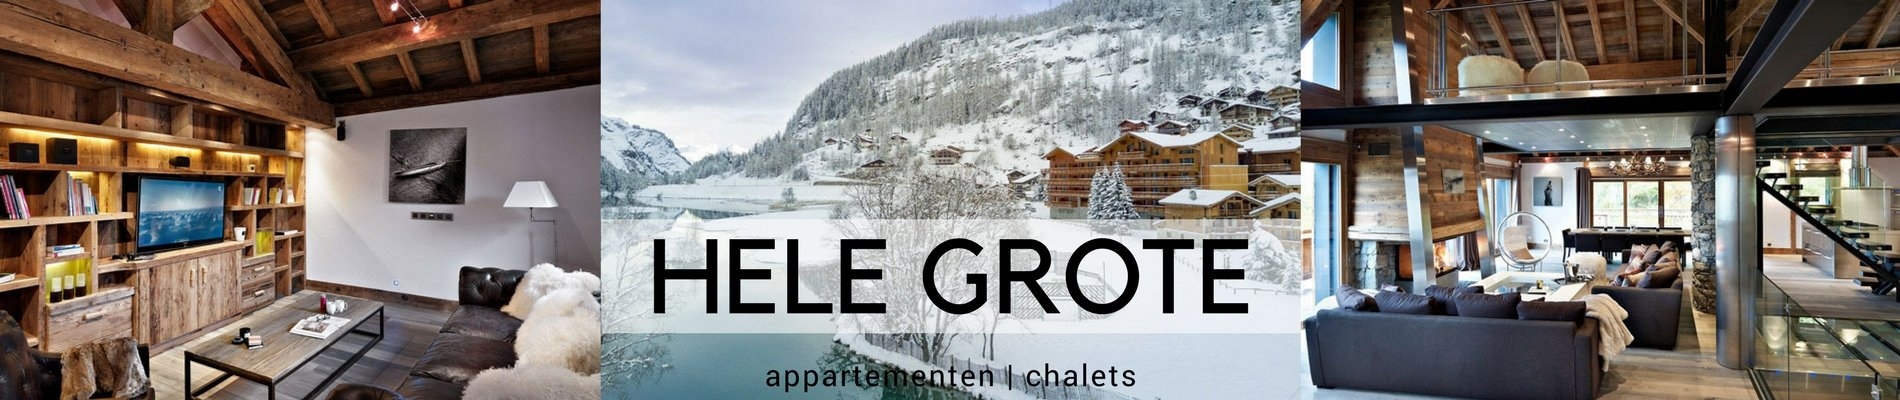 grote wintersport accommodaties 1900x400 2